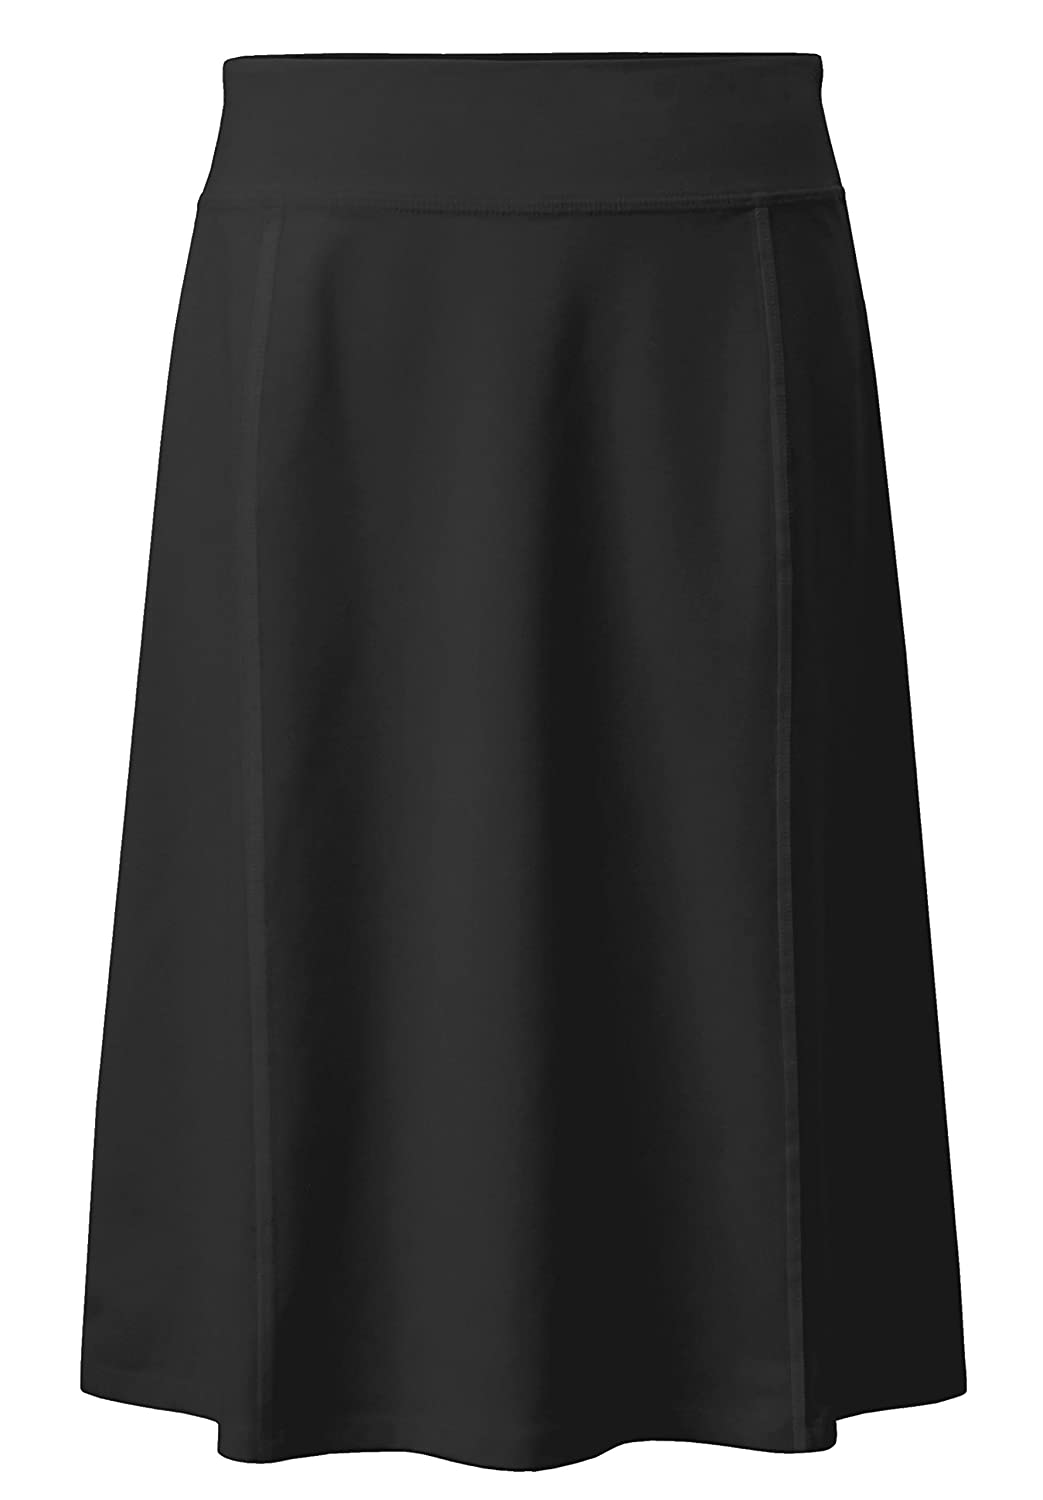 Black Large BabyO Girls Stretch Cotton Knit Panel Below The Knee Length A-Line Skirt Childrens